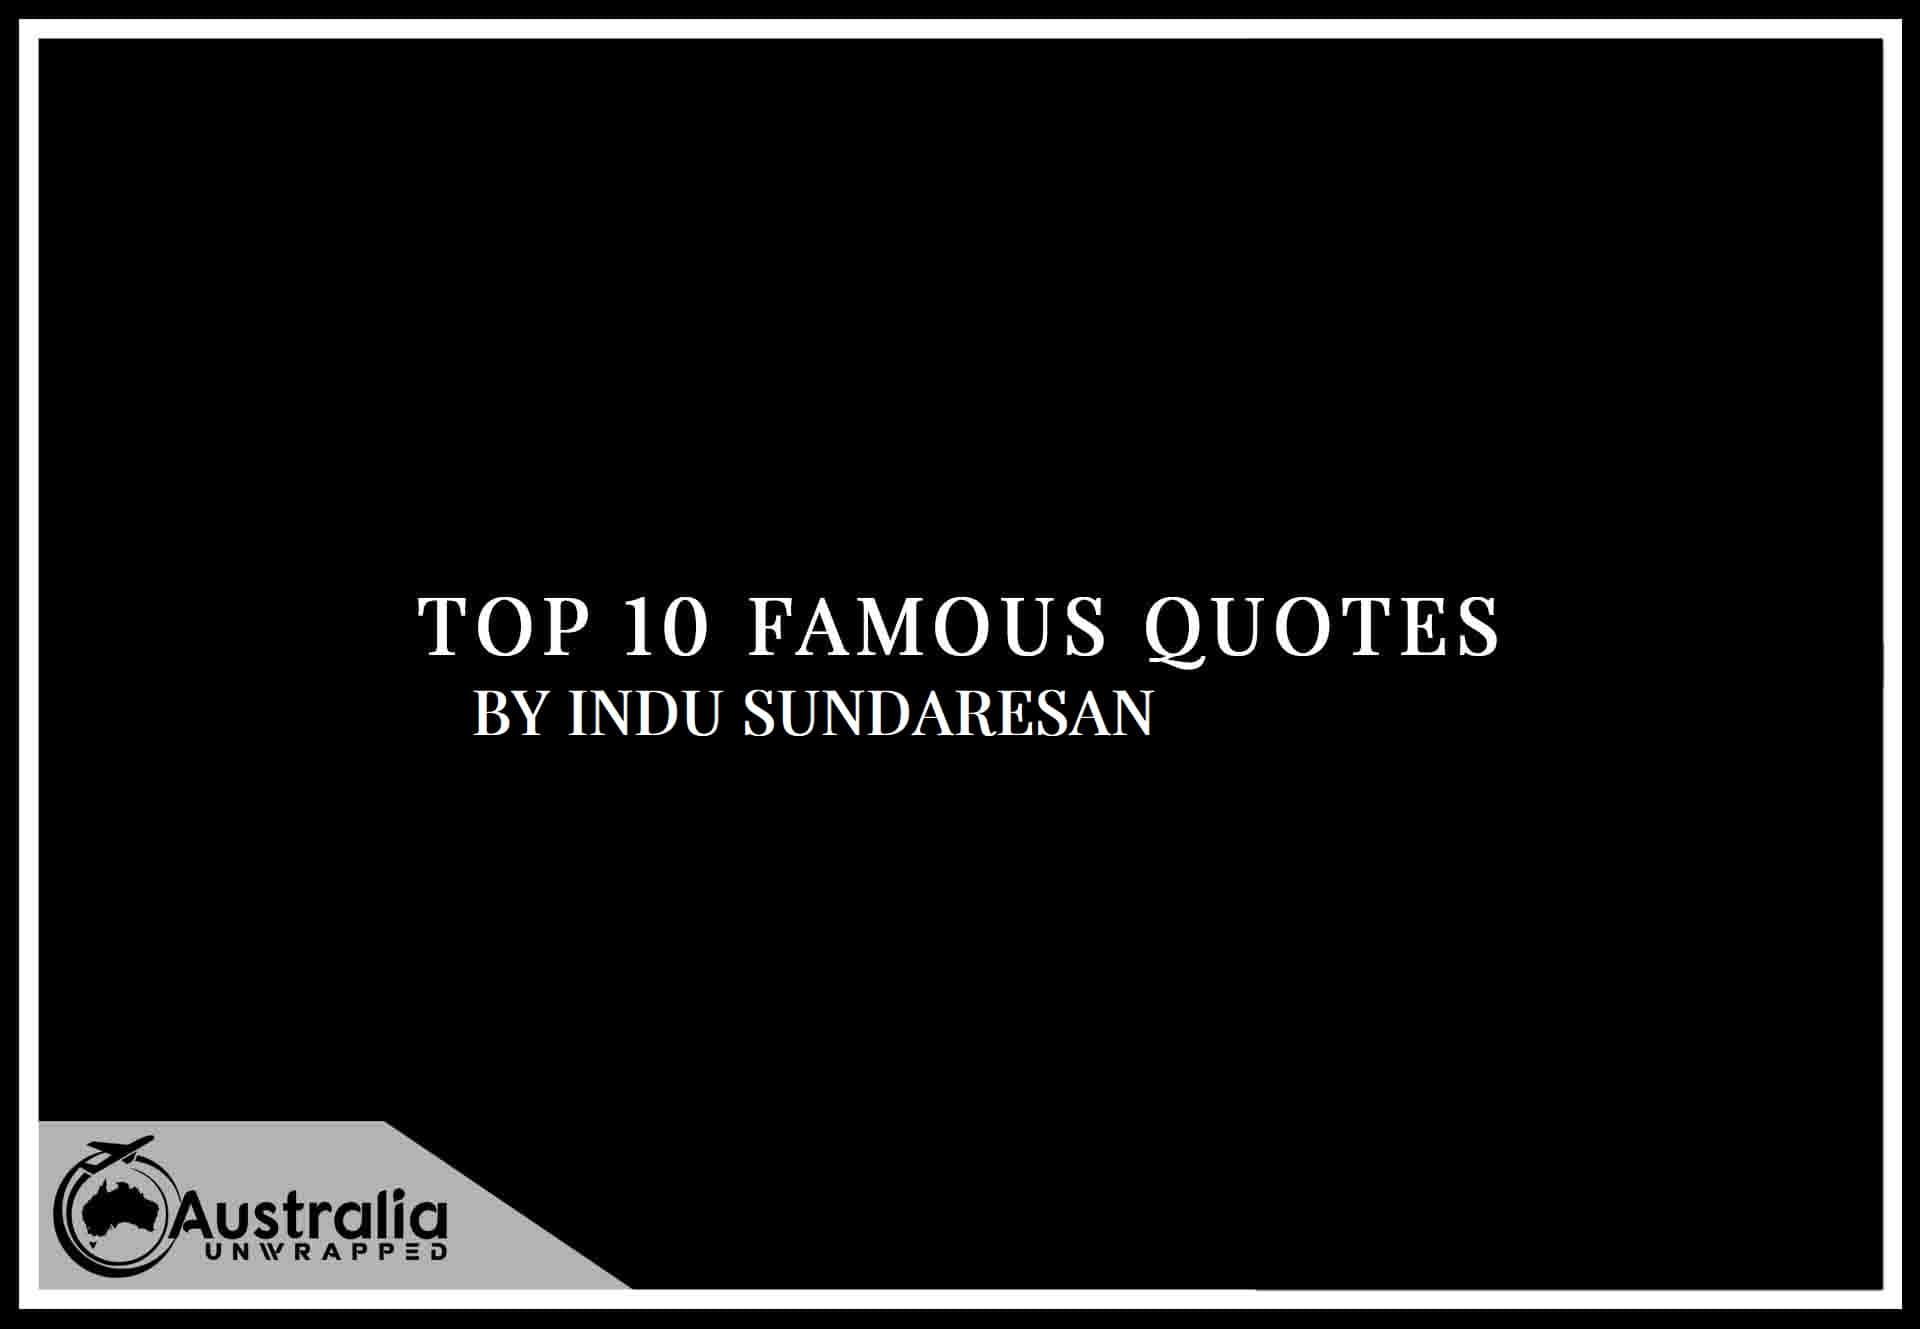 Top 10 Famous Quotes by Author Indu Sundaresan